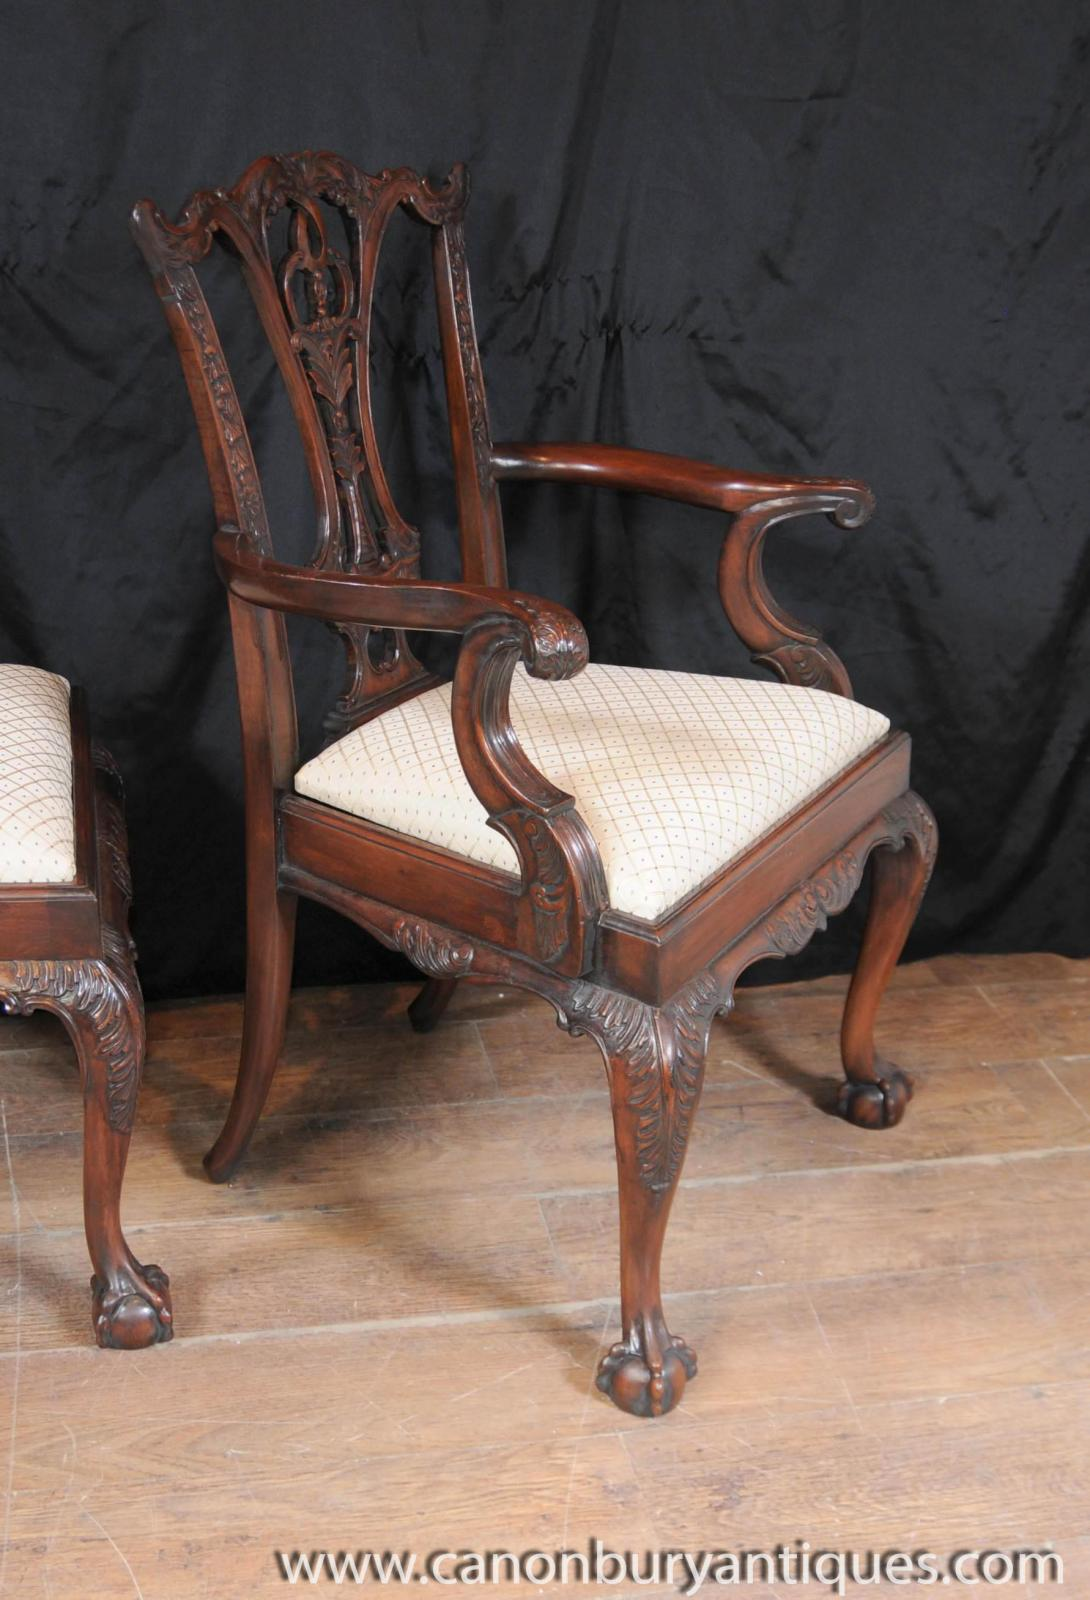 Set 10 Mahogany Chippendale Dining Chairs Ball Claw Feet  : Set201020Mahogany20Chippendale20Dining20Chairs20Ball20Claw20Feet20Diner20Chair 1381380877 zoom 30 from www.ebay.com size 1090 x 1600 jpeg 167kB